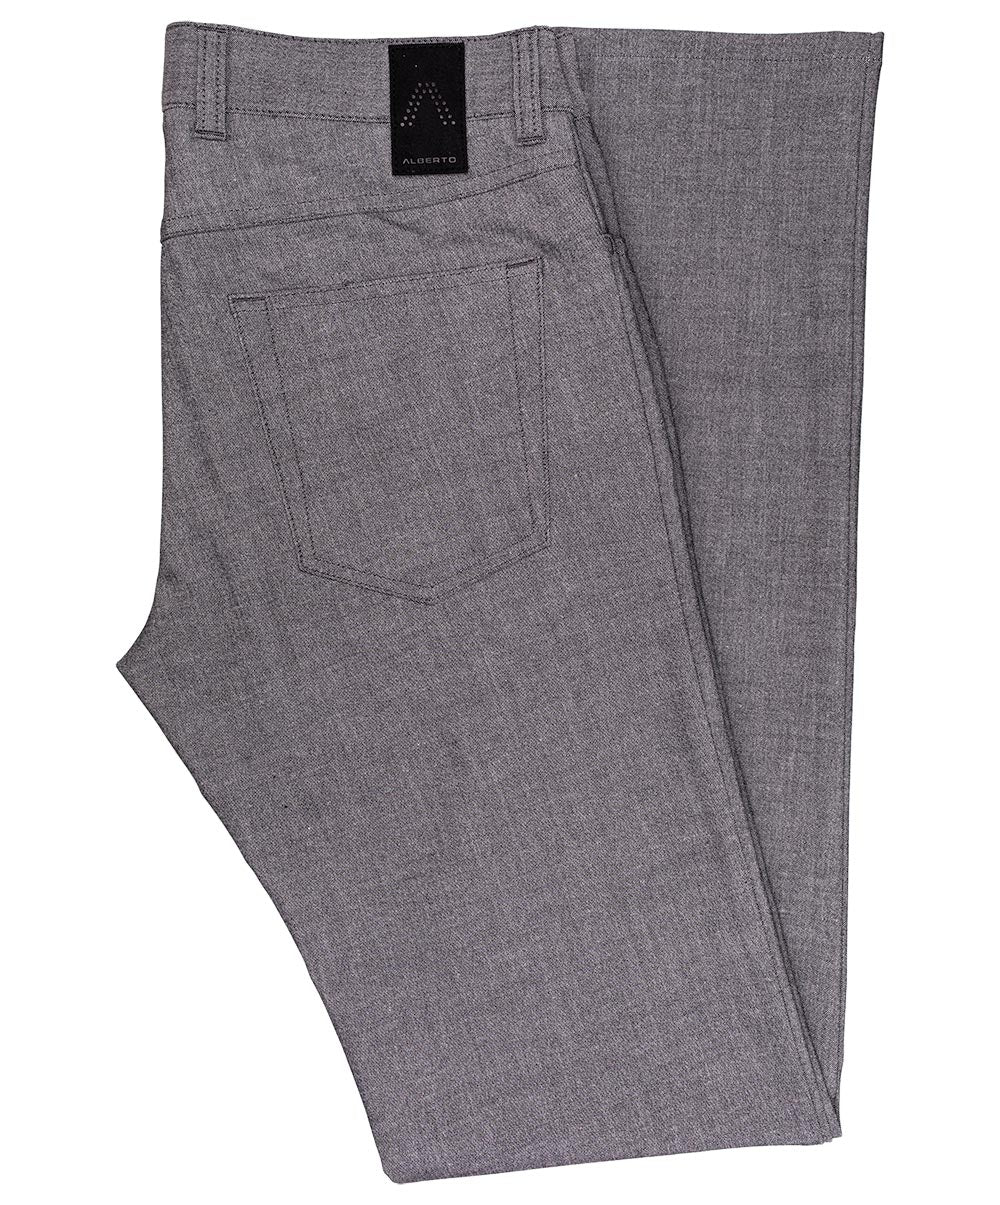 Pipe Salt'n'Pepper Ceramica Dress Pant